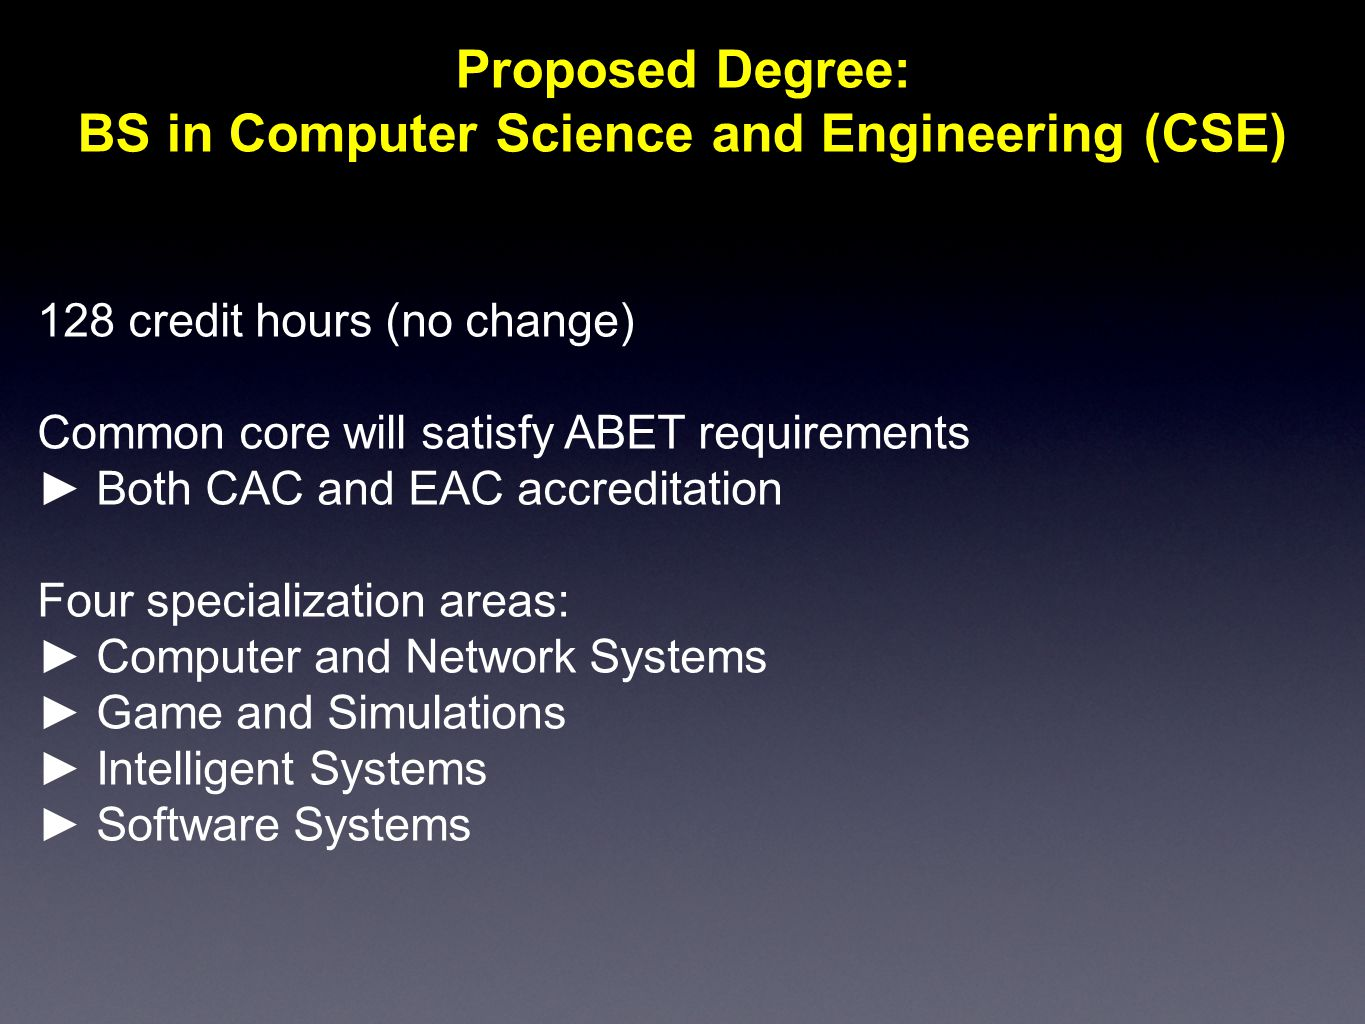 Proposed Degree: BS in Computer Science and Engineering (CSE) 128 credit hours (no change) Common core will satisfy ABET requirements ► Both CAC and EAC accreditation Four specialization areas: ► Computer and Network Systems ► Game and Simulations ► Intelligent Systems ► Software Systems